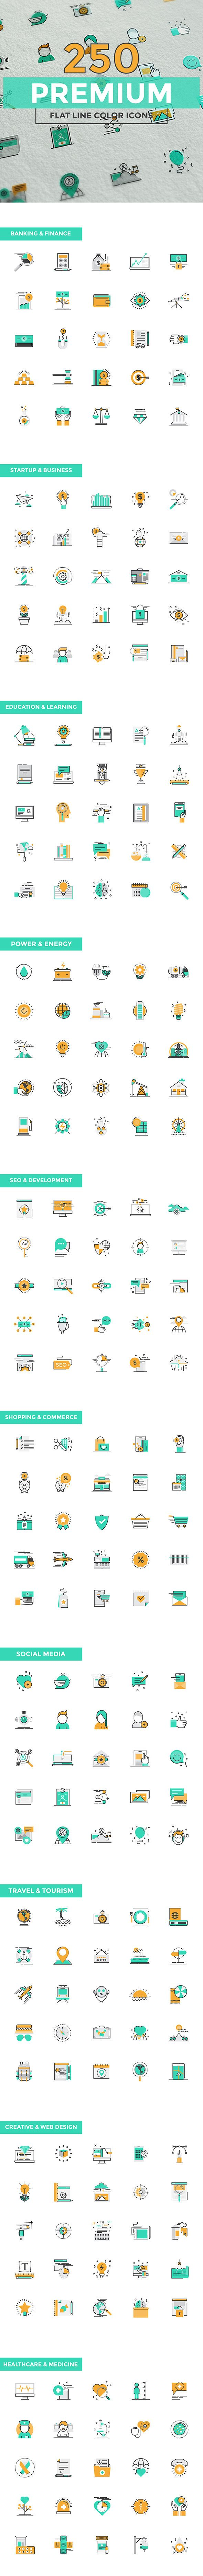 https://www.behance.net/gallery/32852395/Set-of-modern-Color-Line-Design-icons